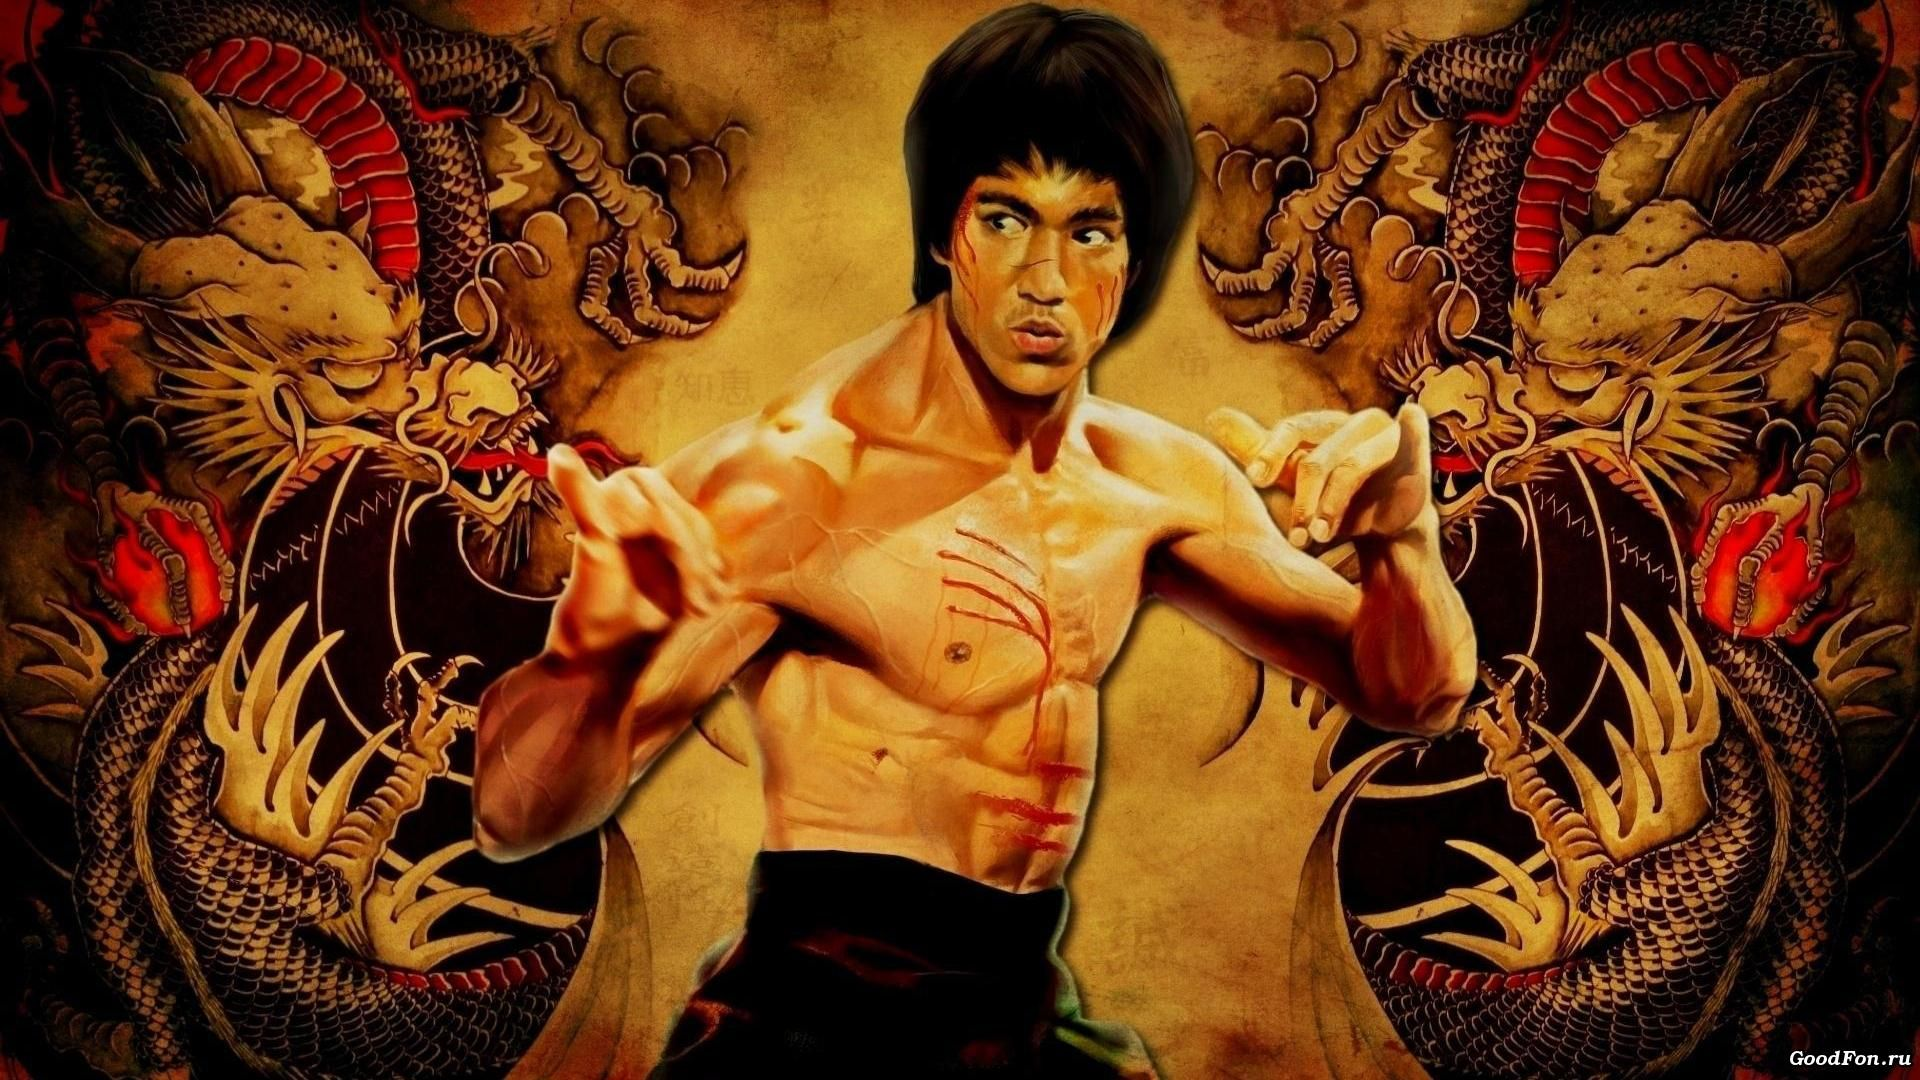 1920x1080 - Bruce Lee Wallpapers 21